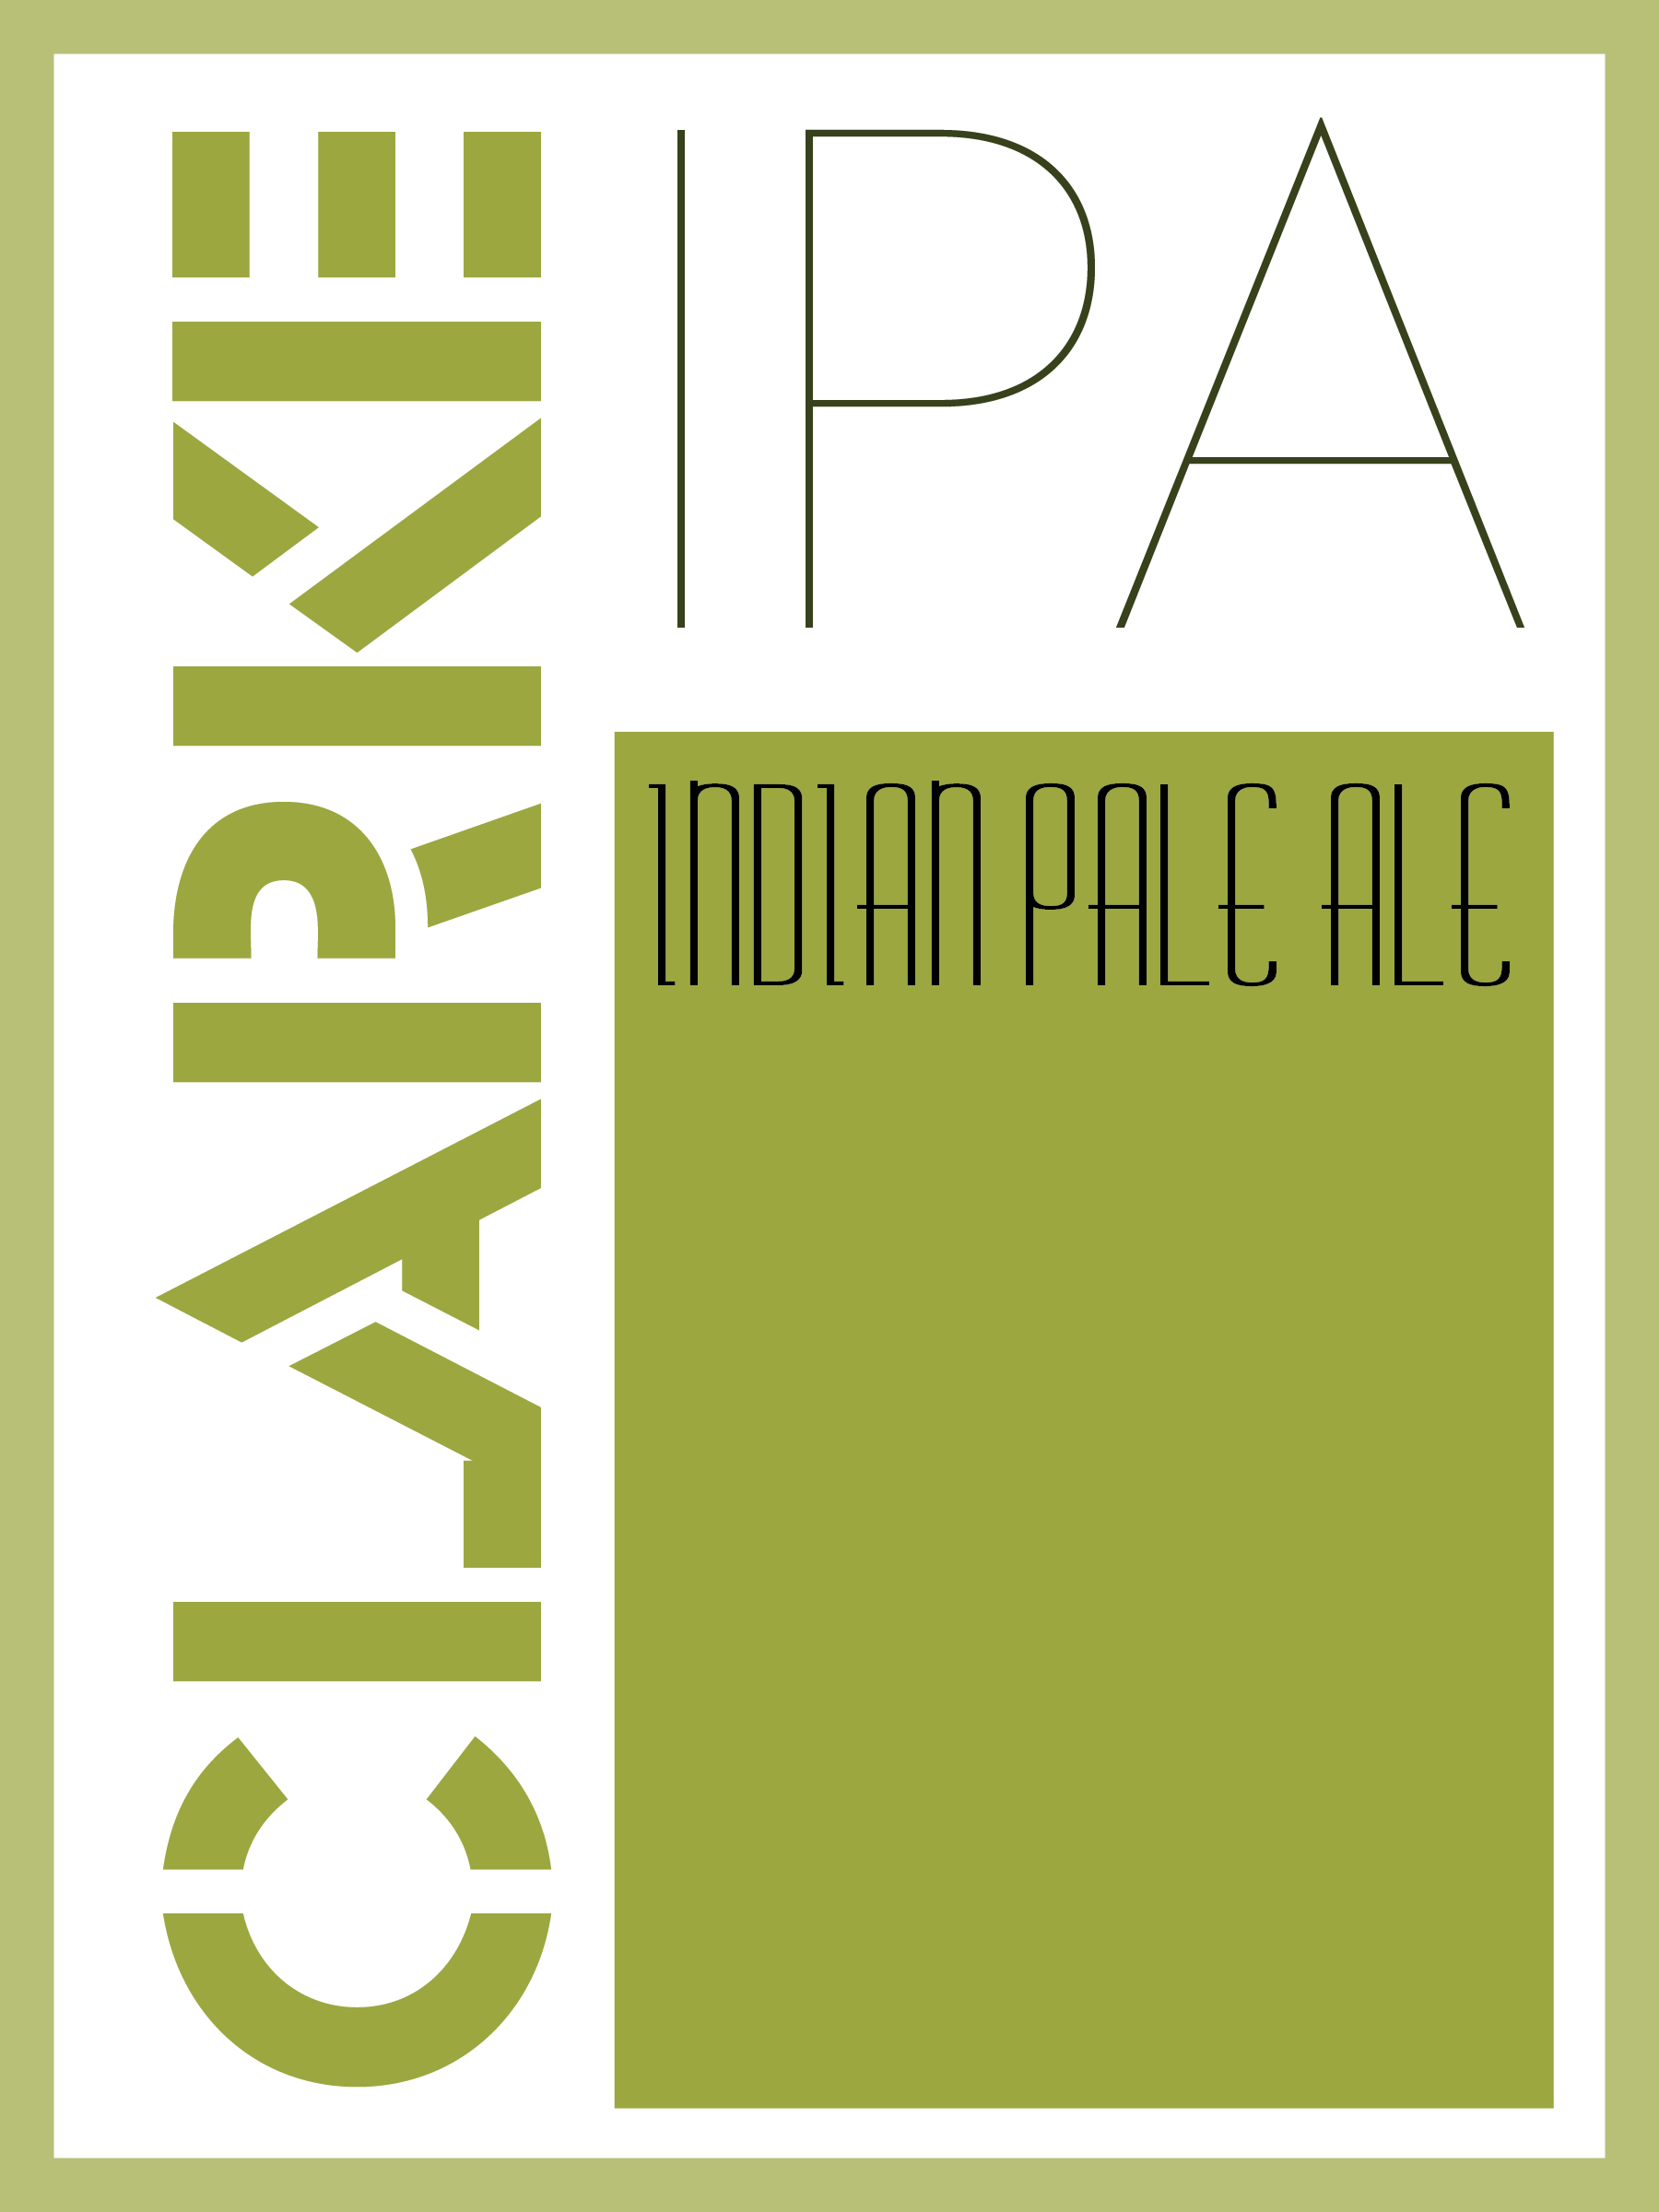 Clarke's Beer - image 1 - student project